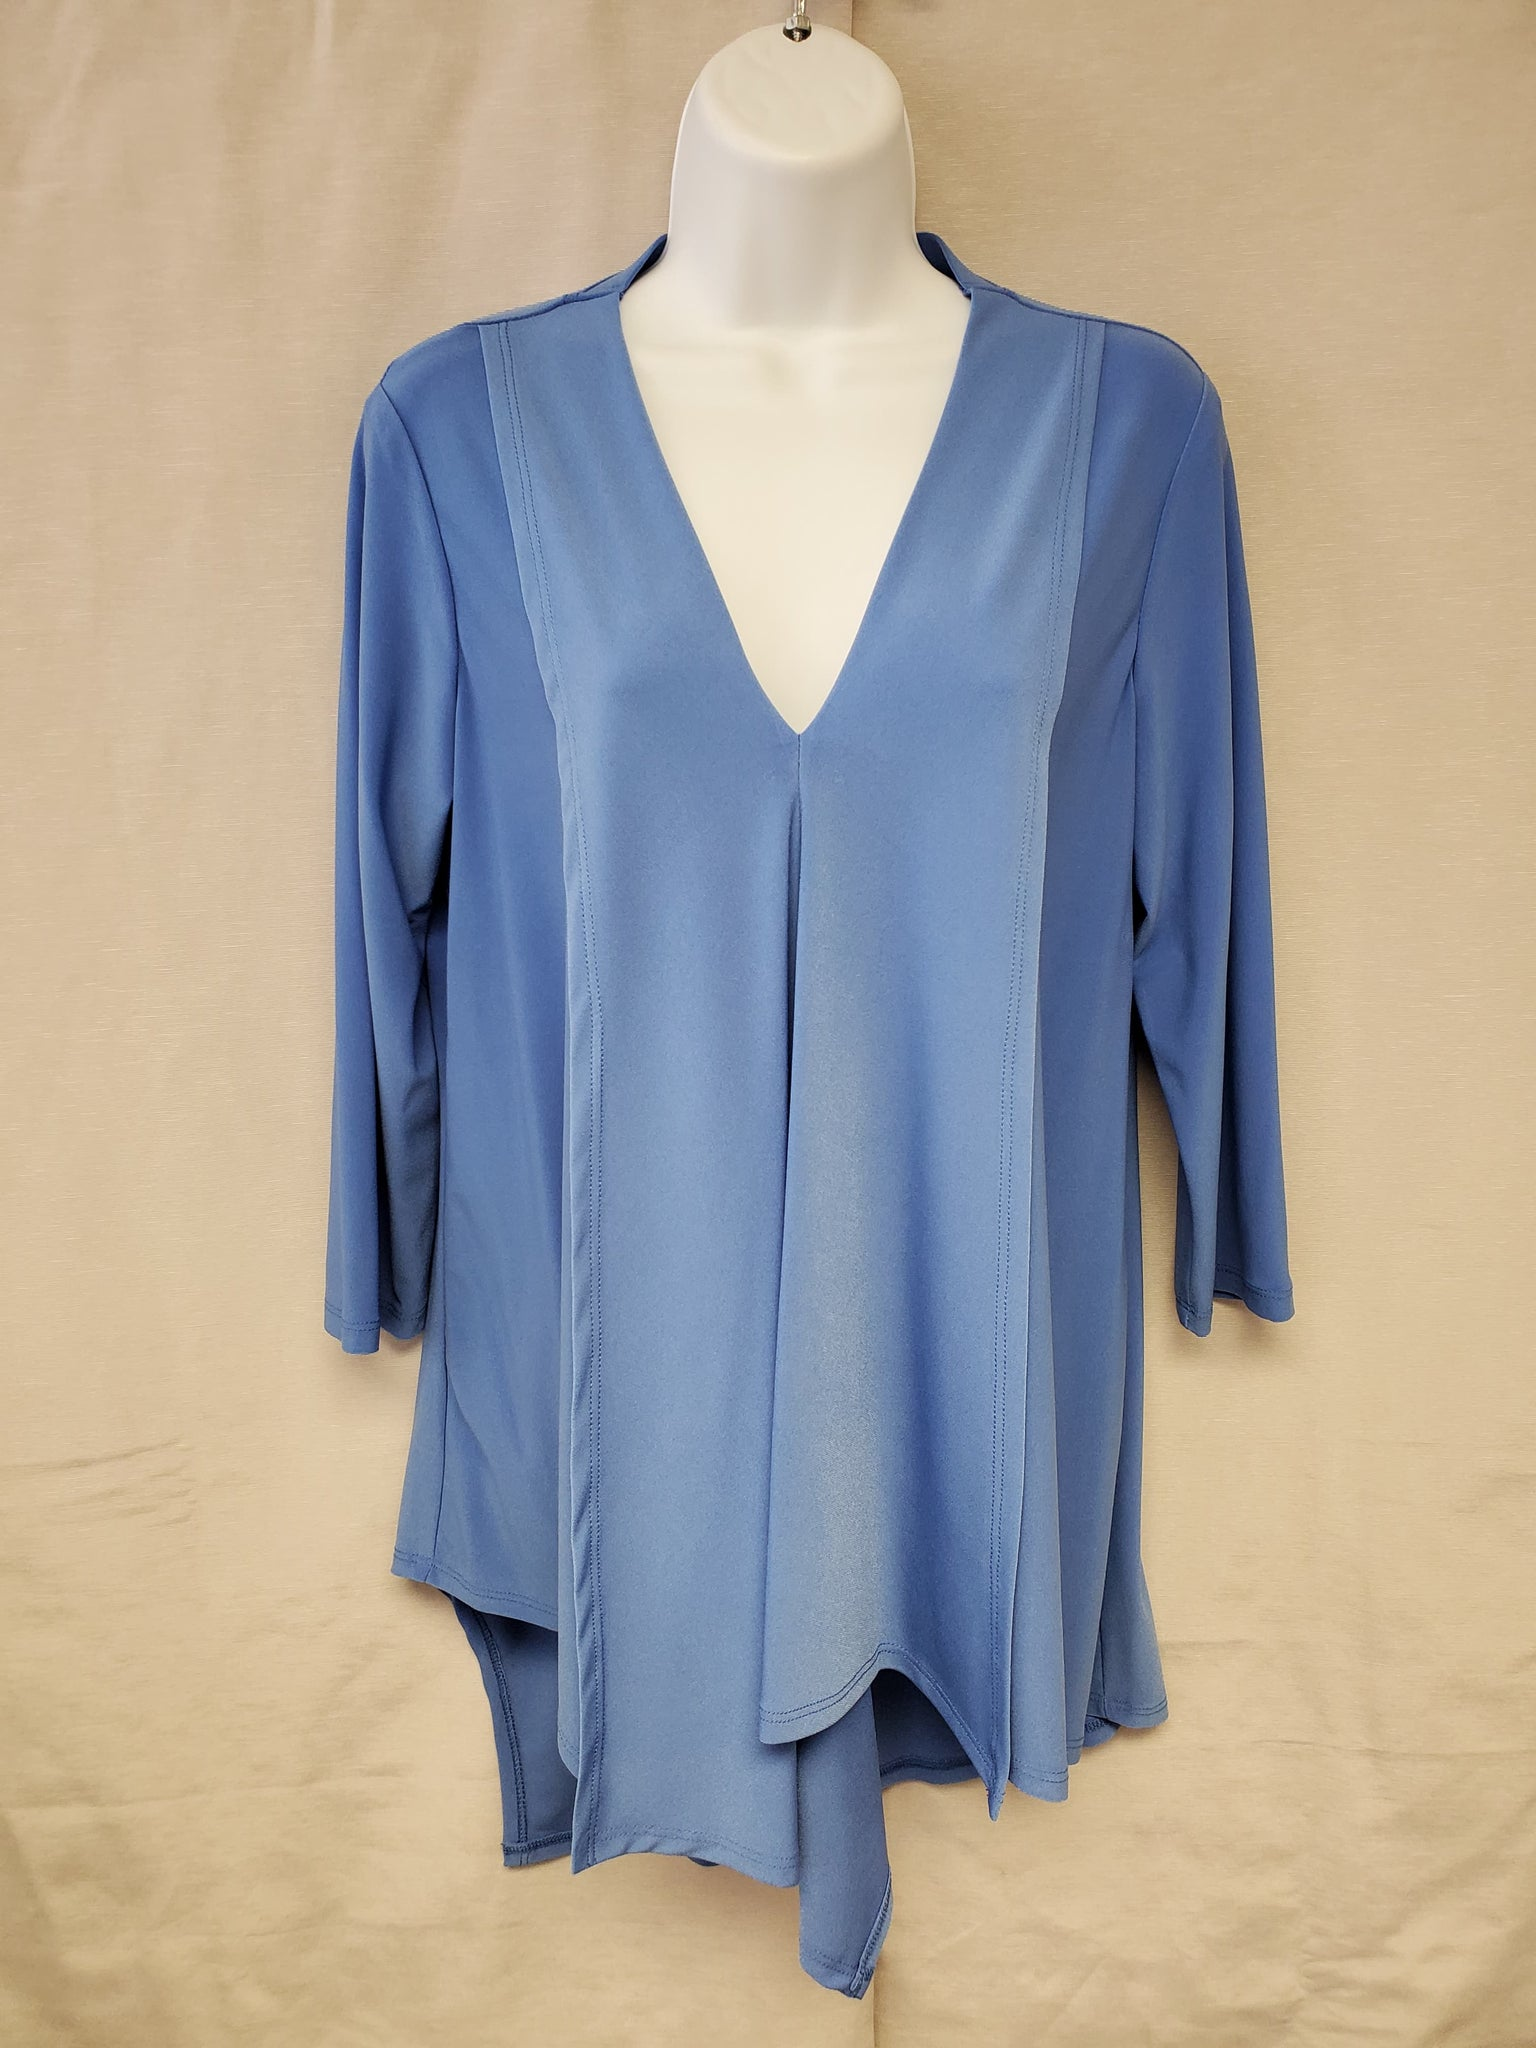 ¾ Sleeve Top – Cornflower Blue